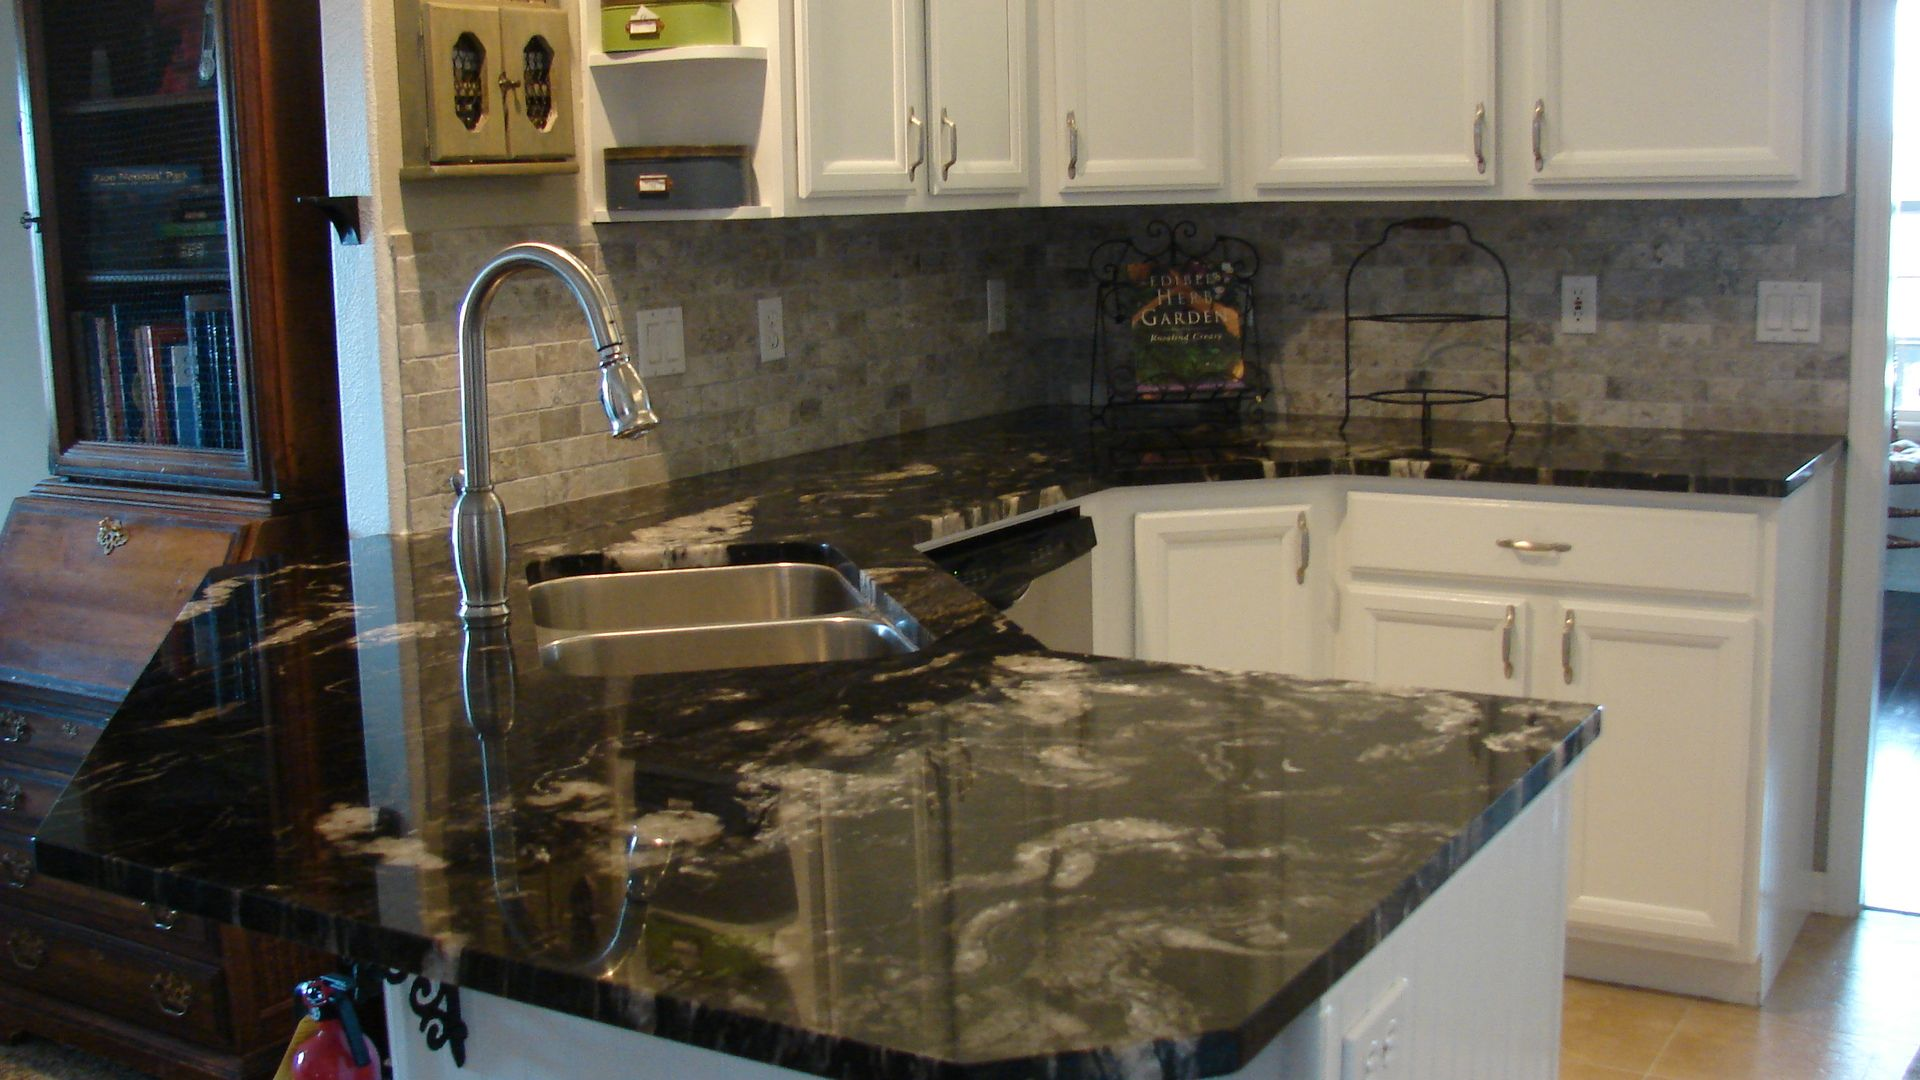 Black Titanium Granite Countertops This Kitchen Remodel Has 3cm Titanium Granite Counters